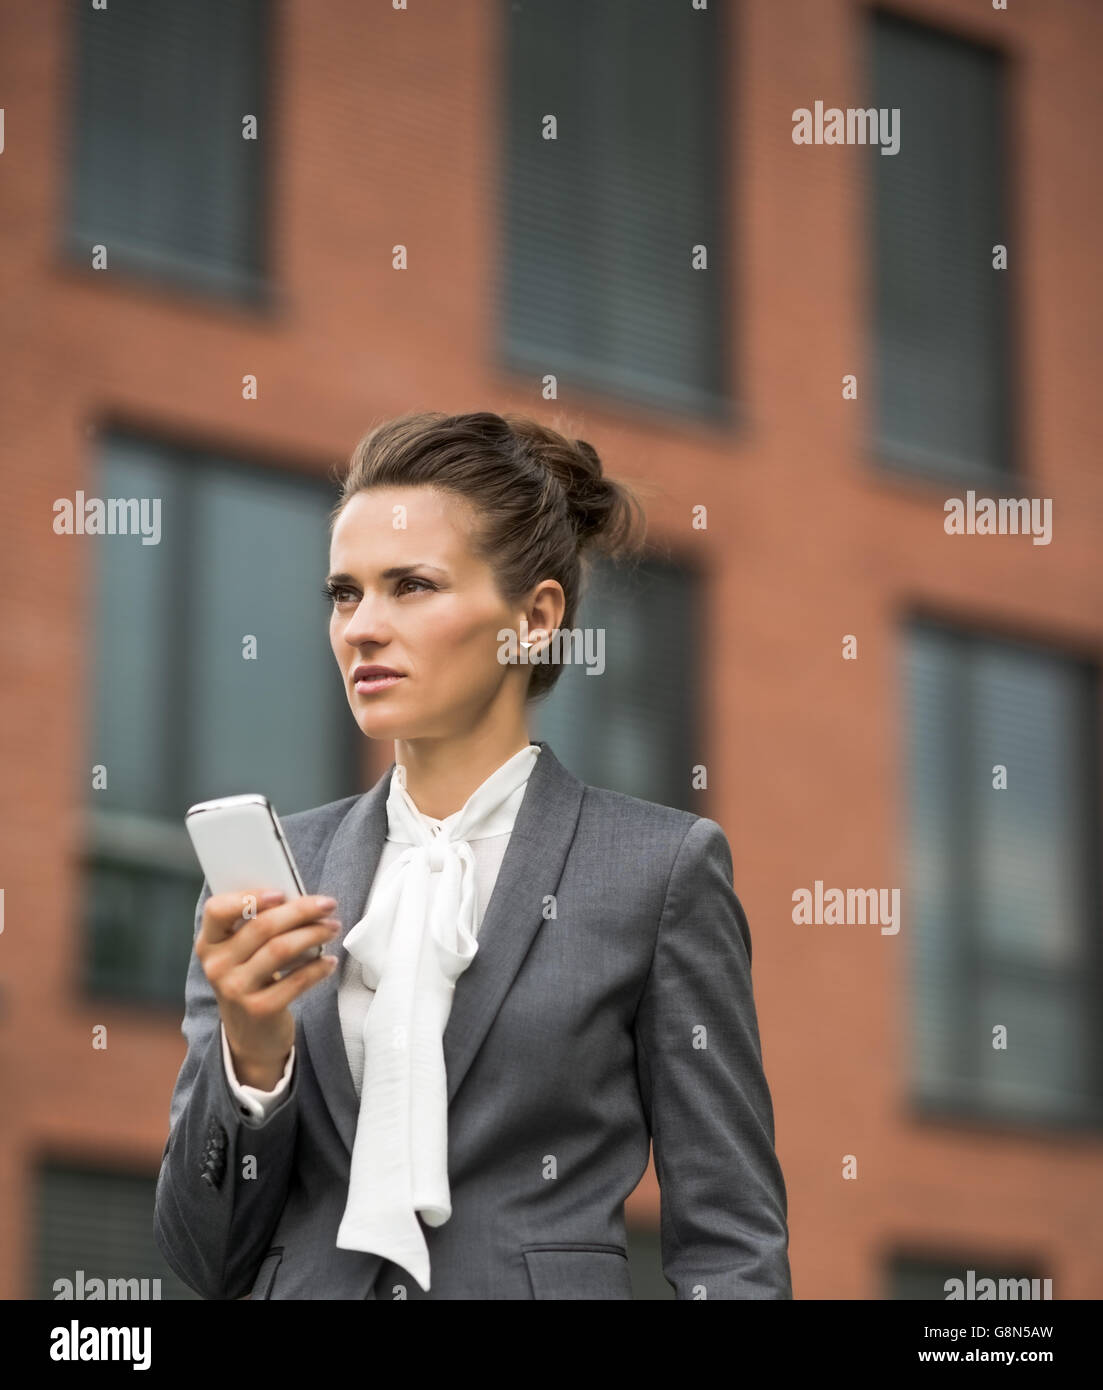 The new business. Modern business woman against office building with smartphone - Stock Image